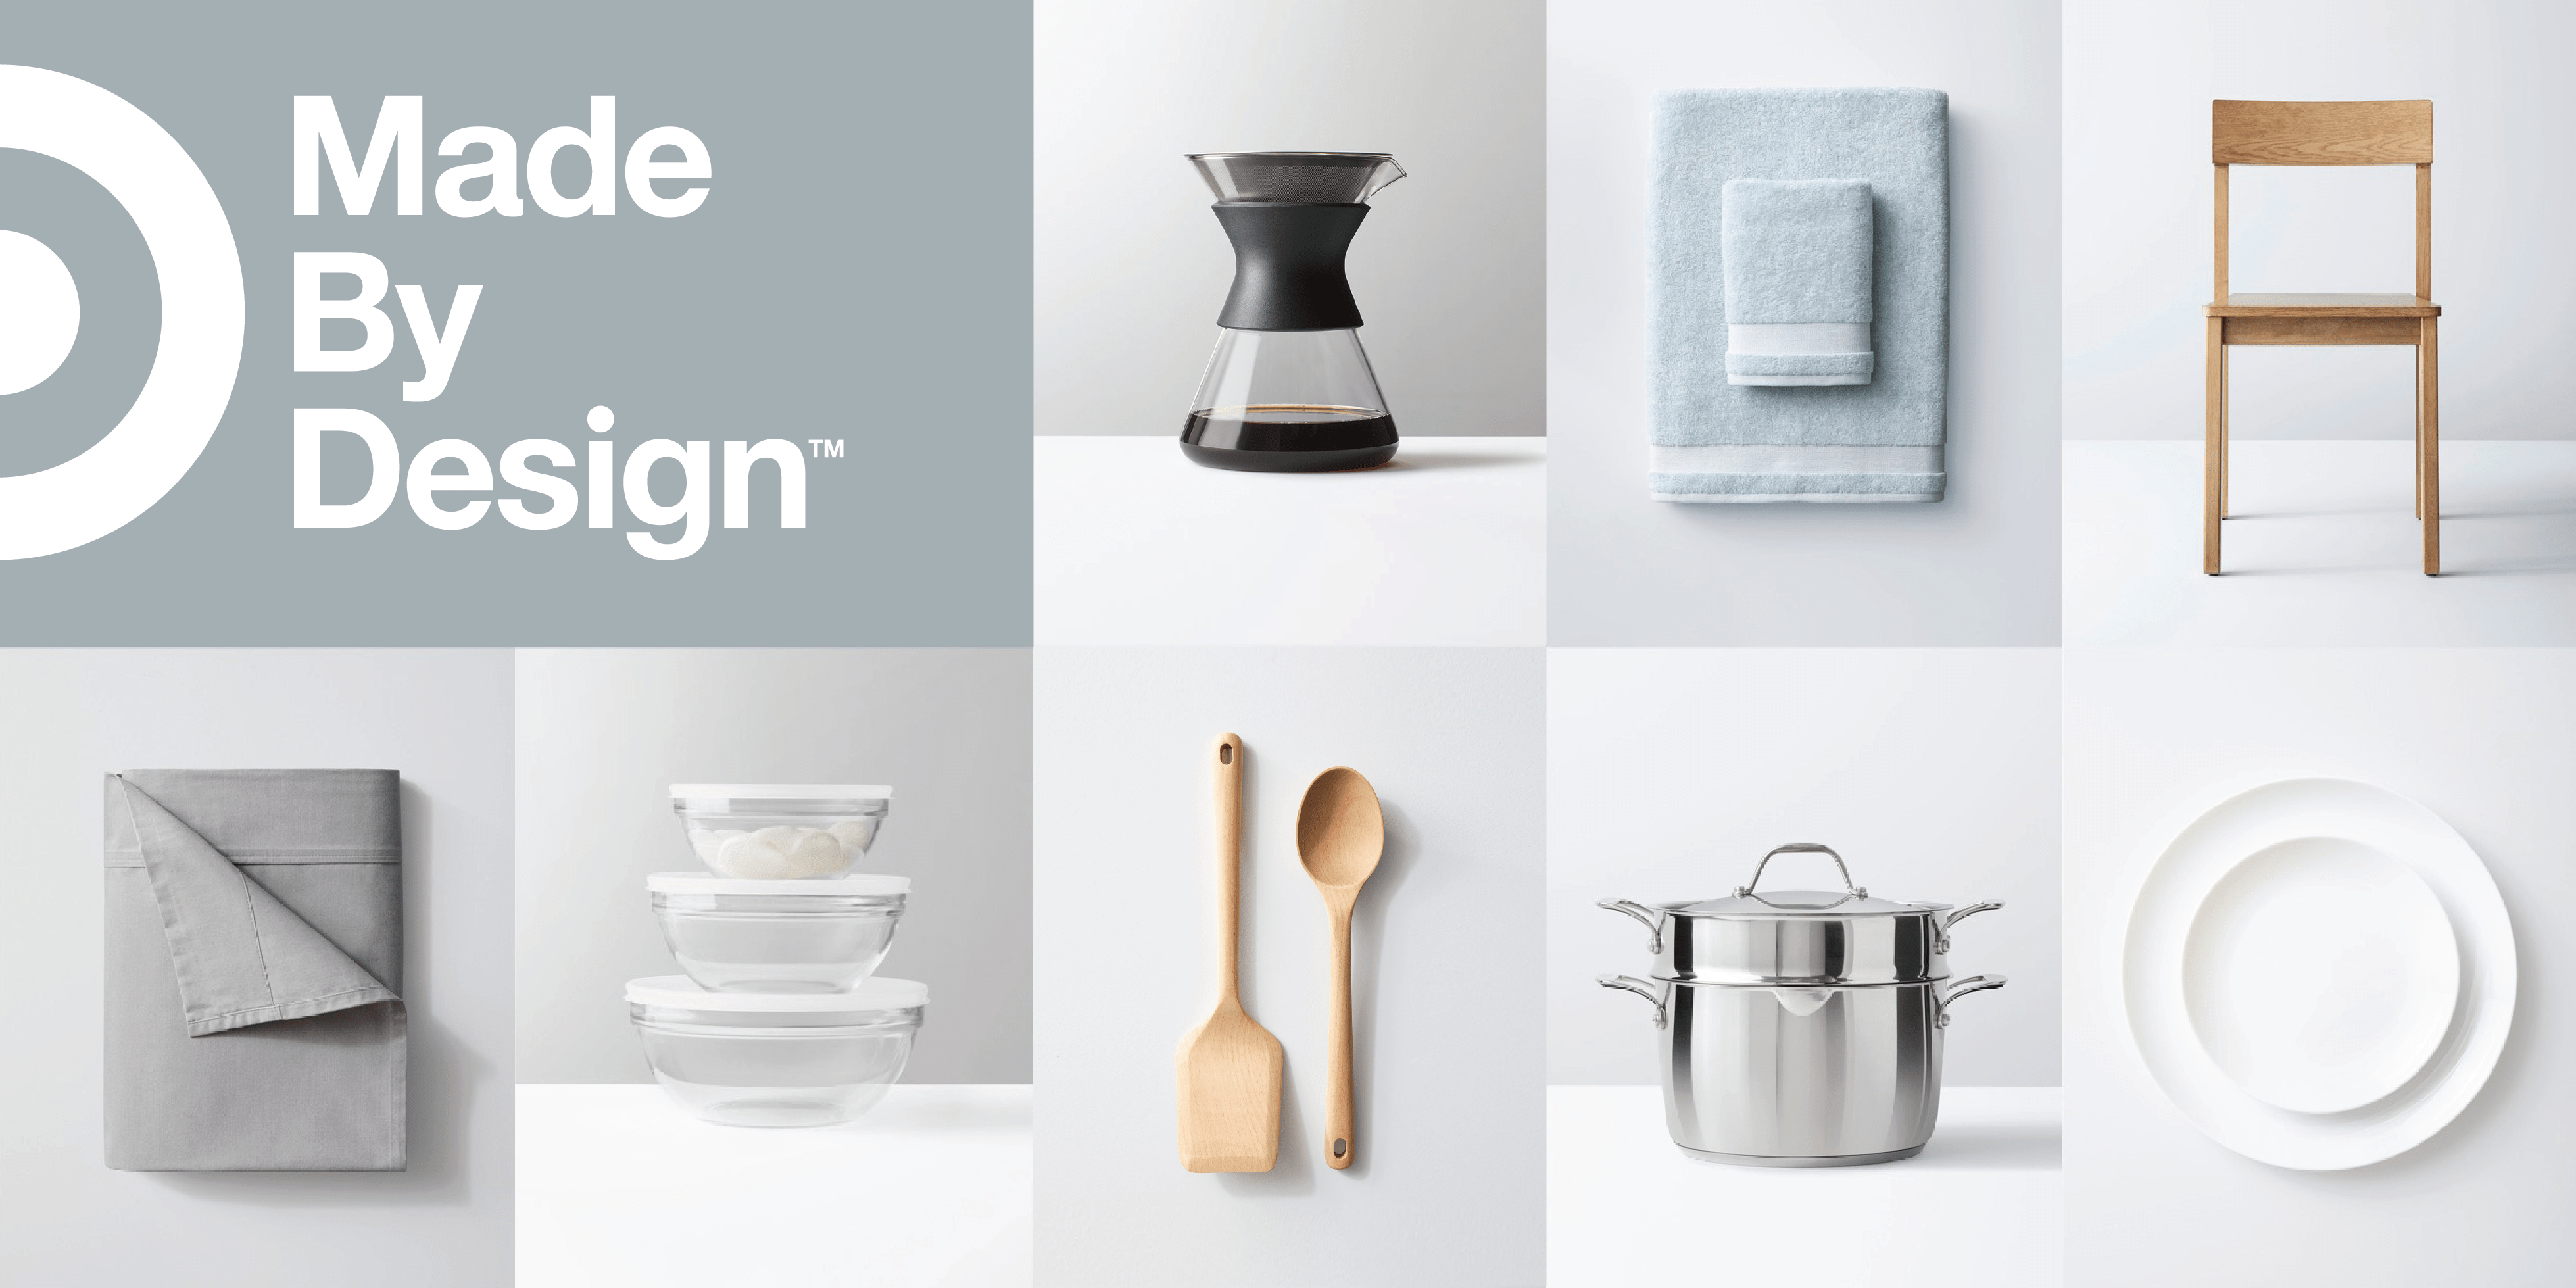 Target's New Home Brand Elevates Everyday Items Without Breaking